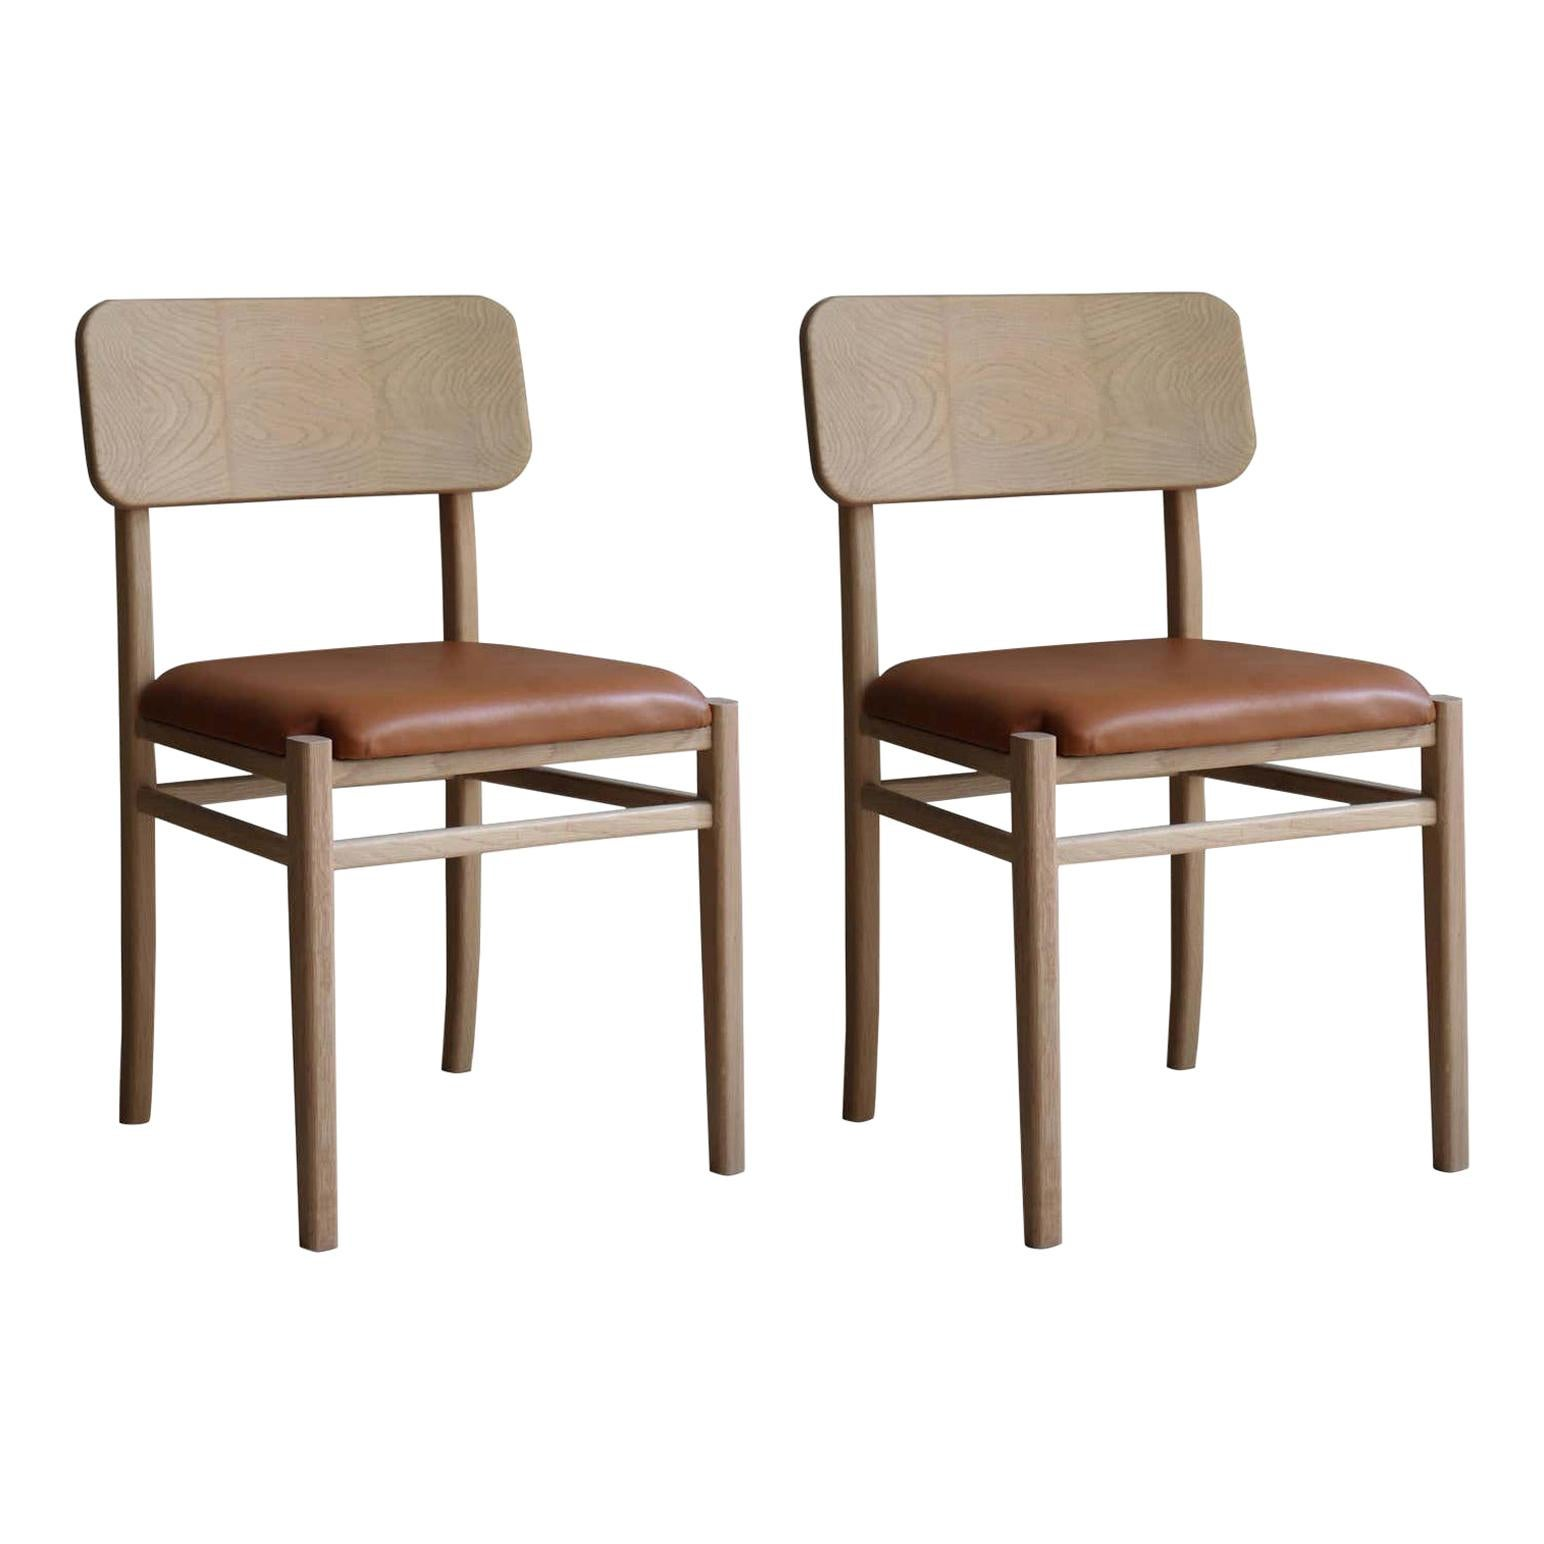 White Oak Chair Set with Leather Seat by Joel Escalona